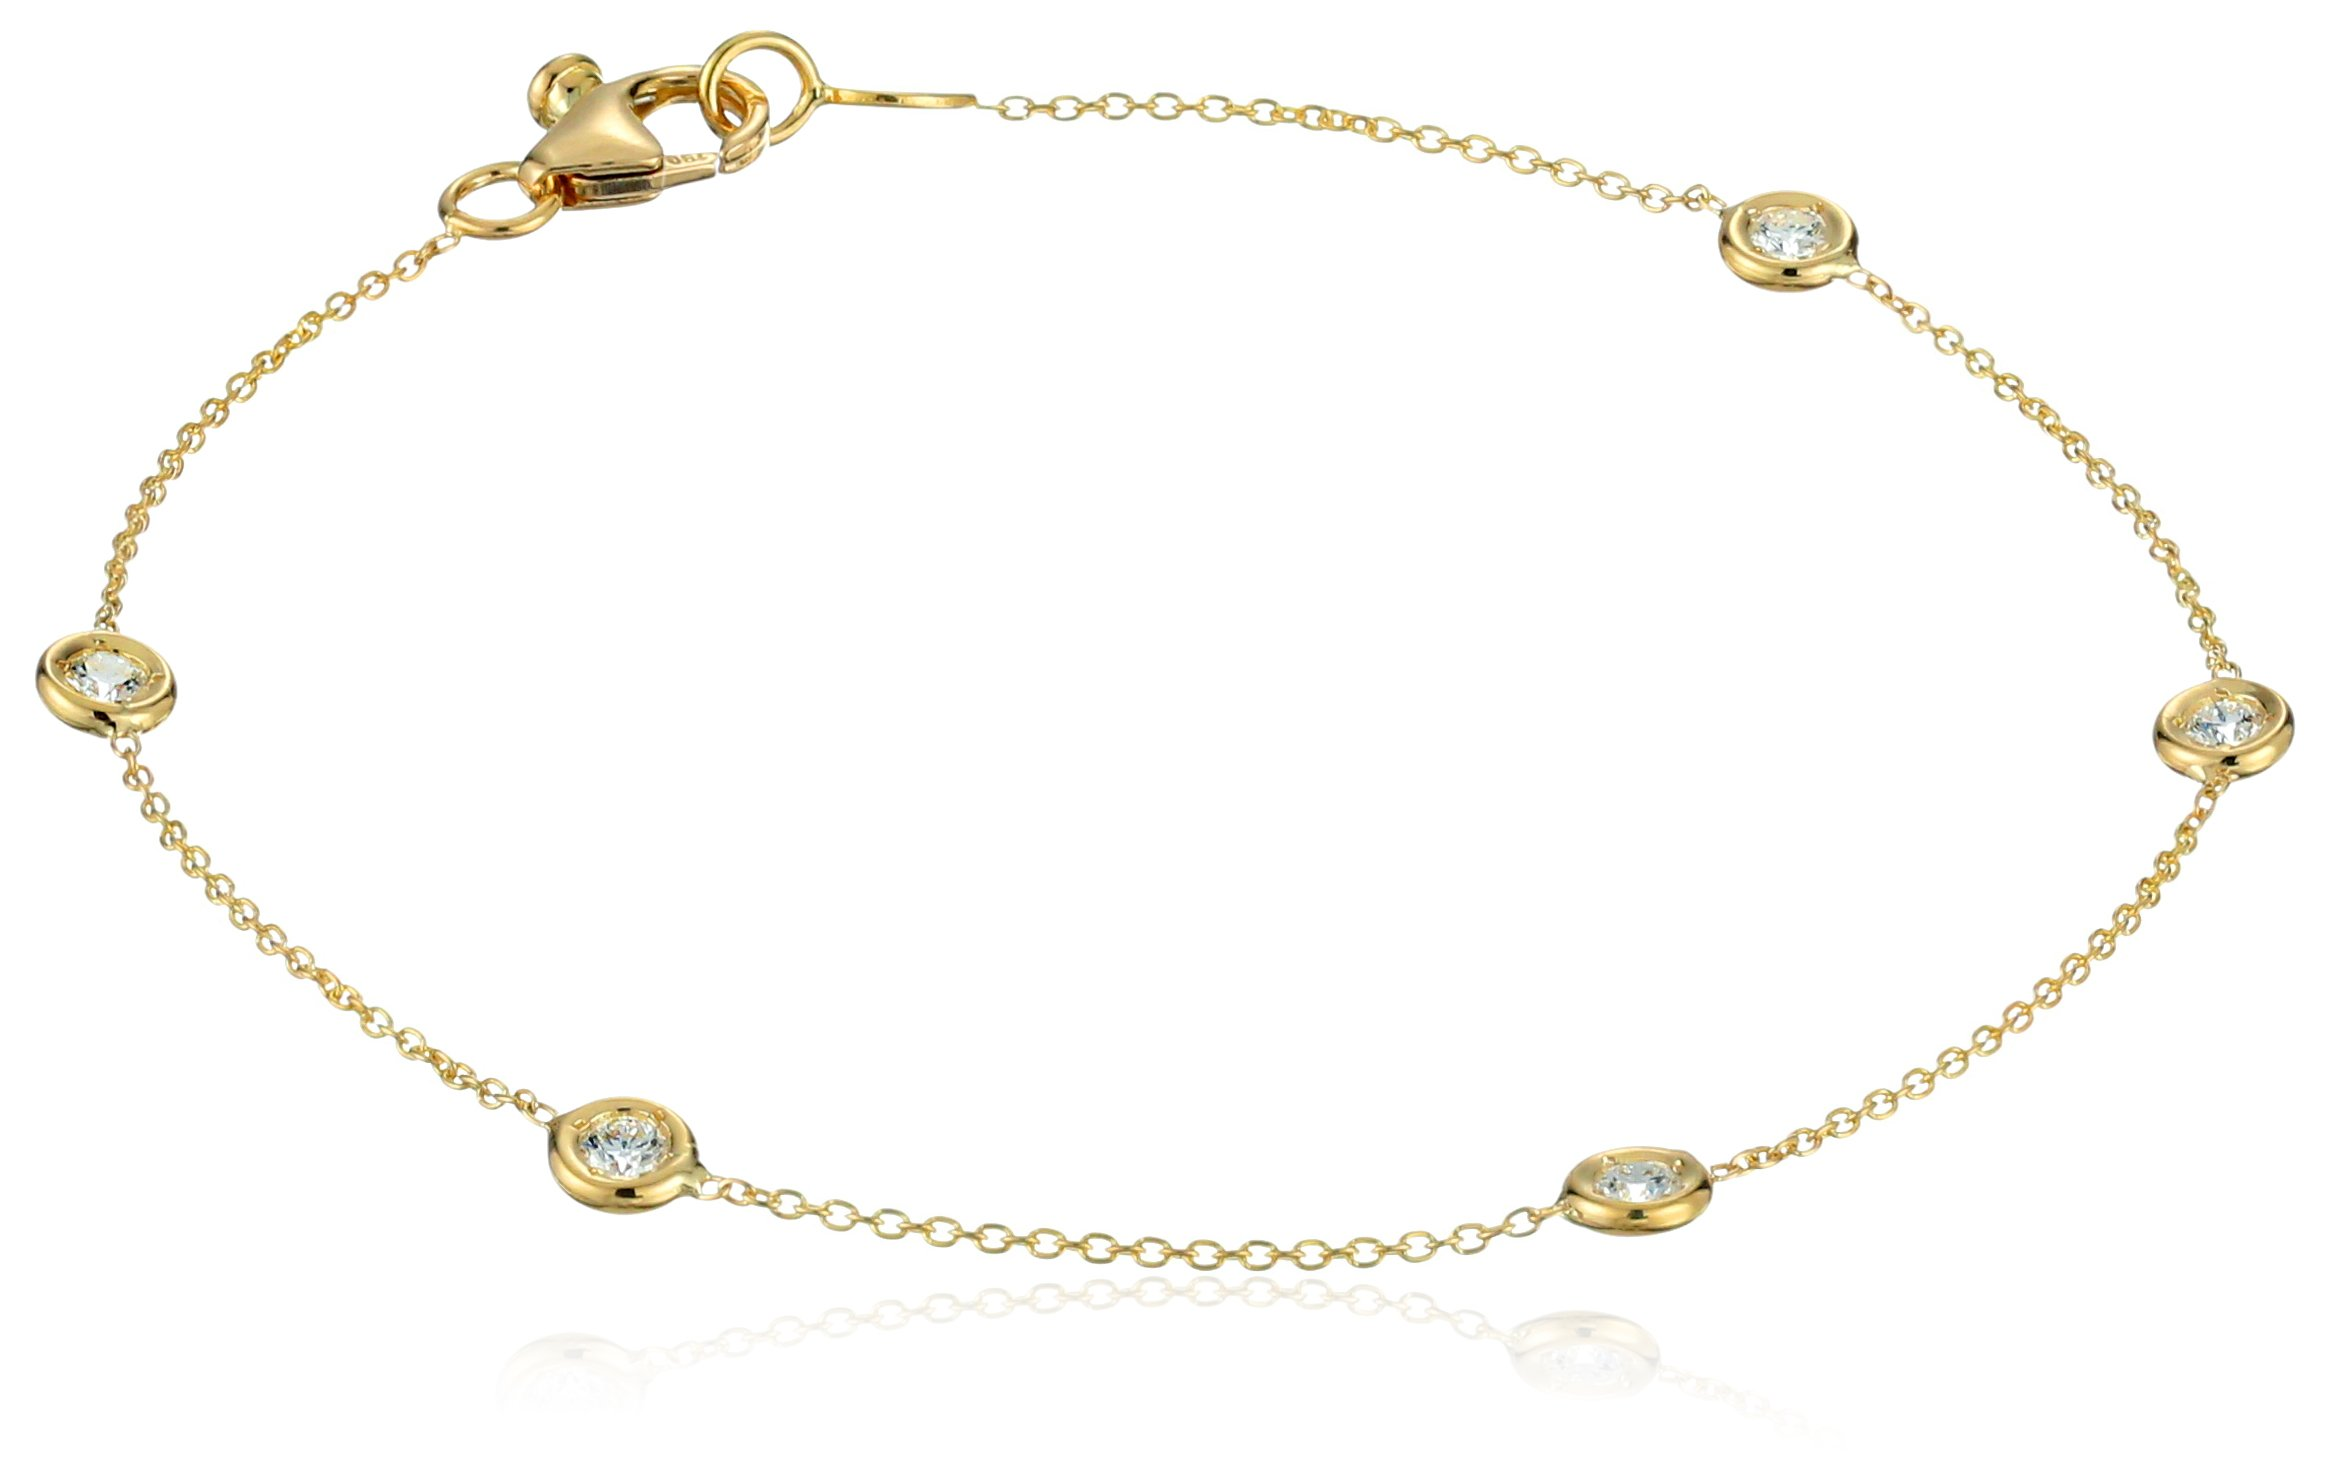 Roberto Coin ''Tiny Treasures'' 5 Station Bezel Set Diamond Bracelet